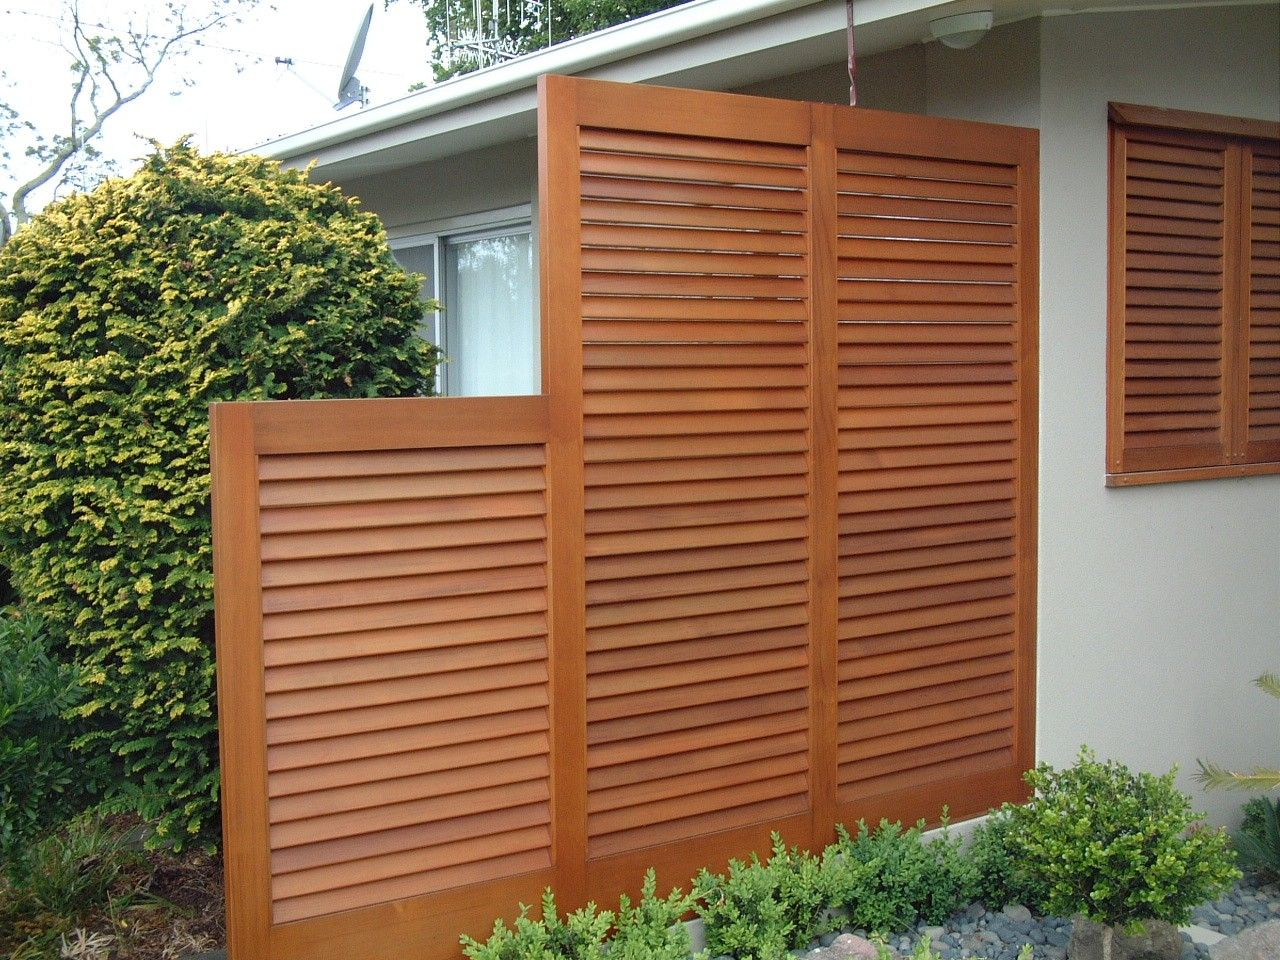 Beautiful exterior outdoor privacy screens shop at for Patio deck privacy screen